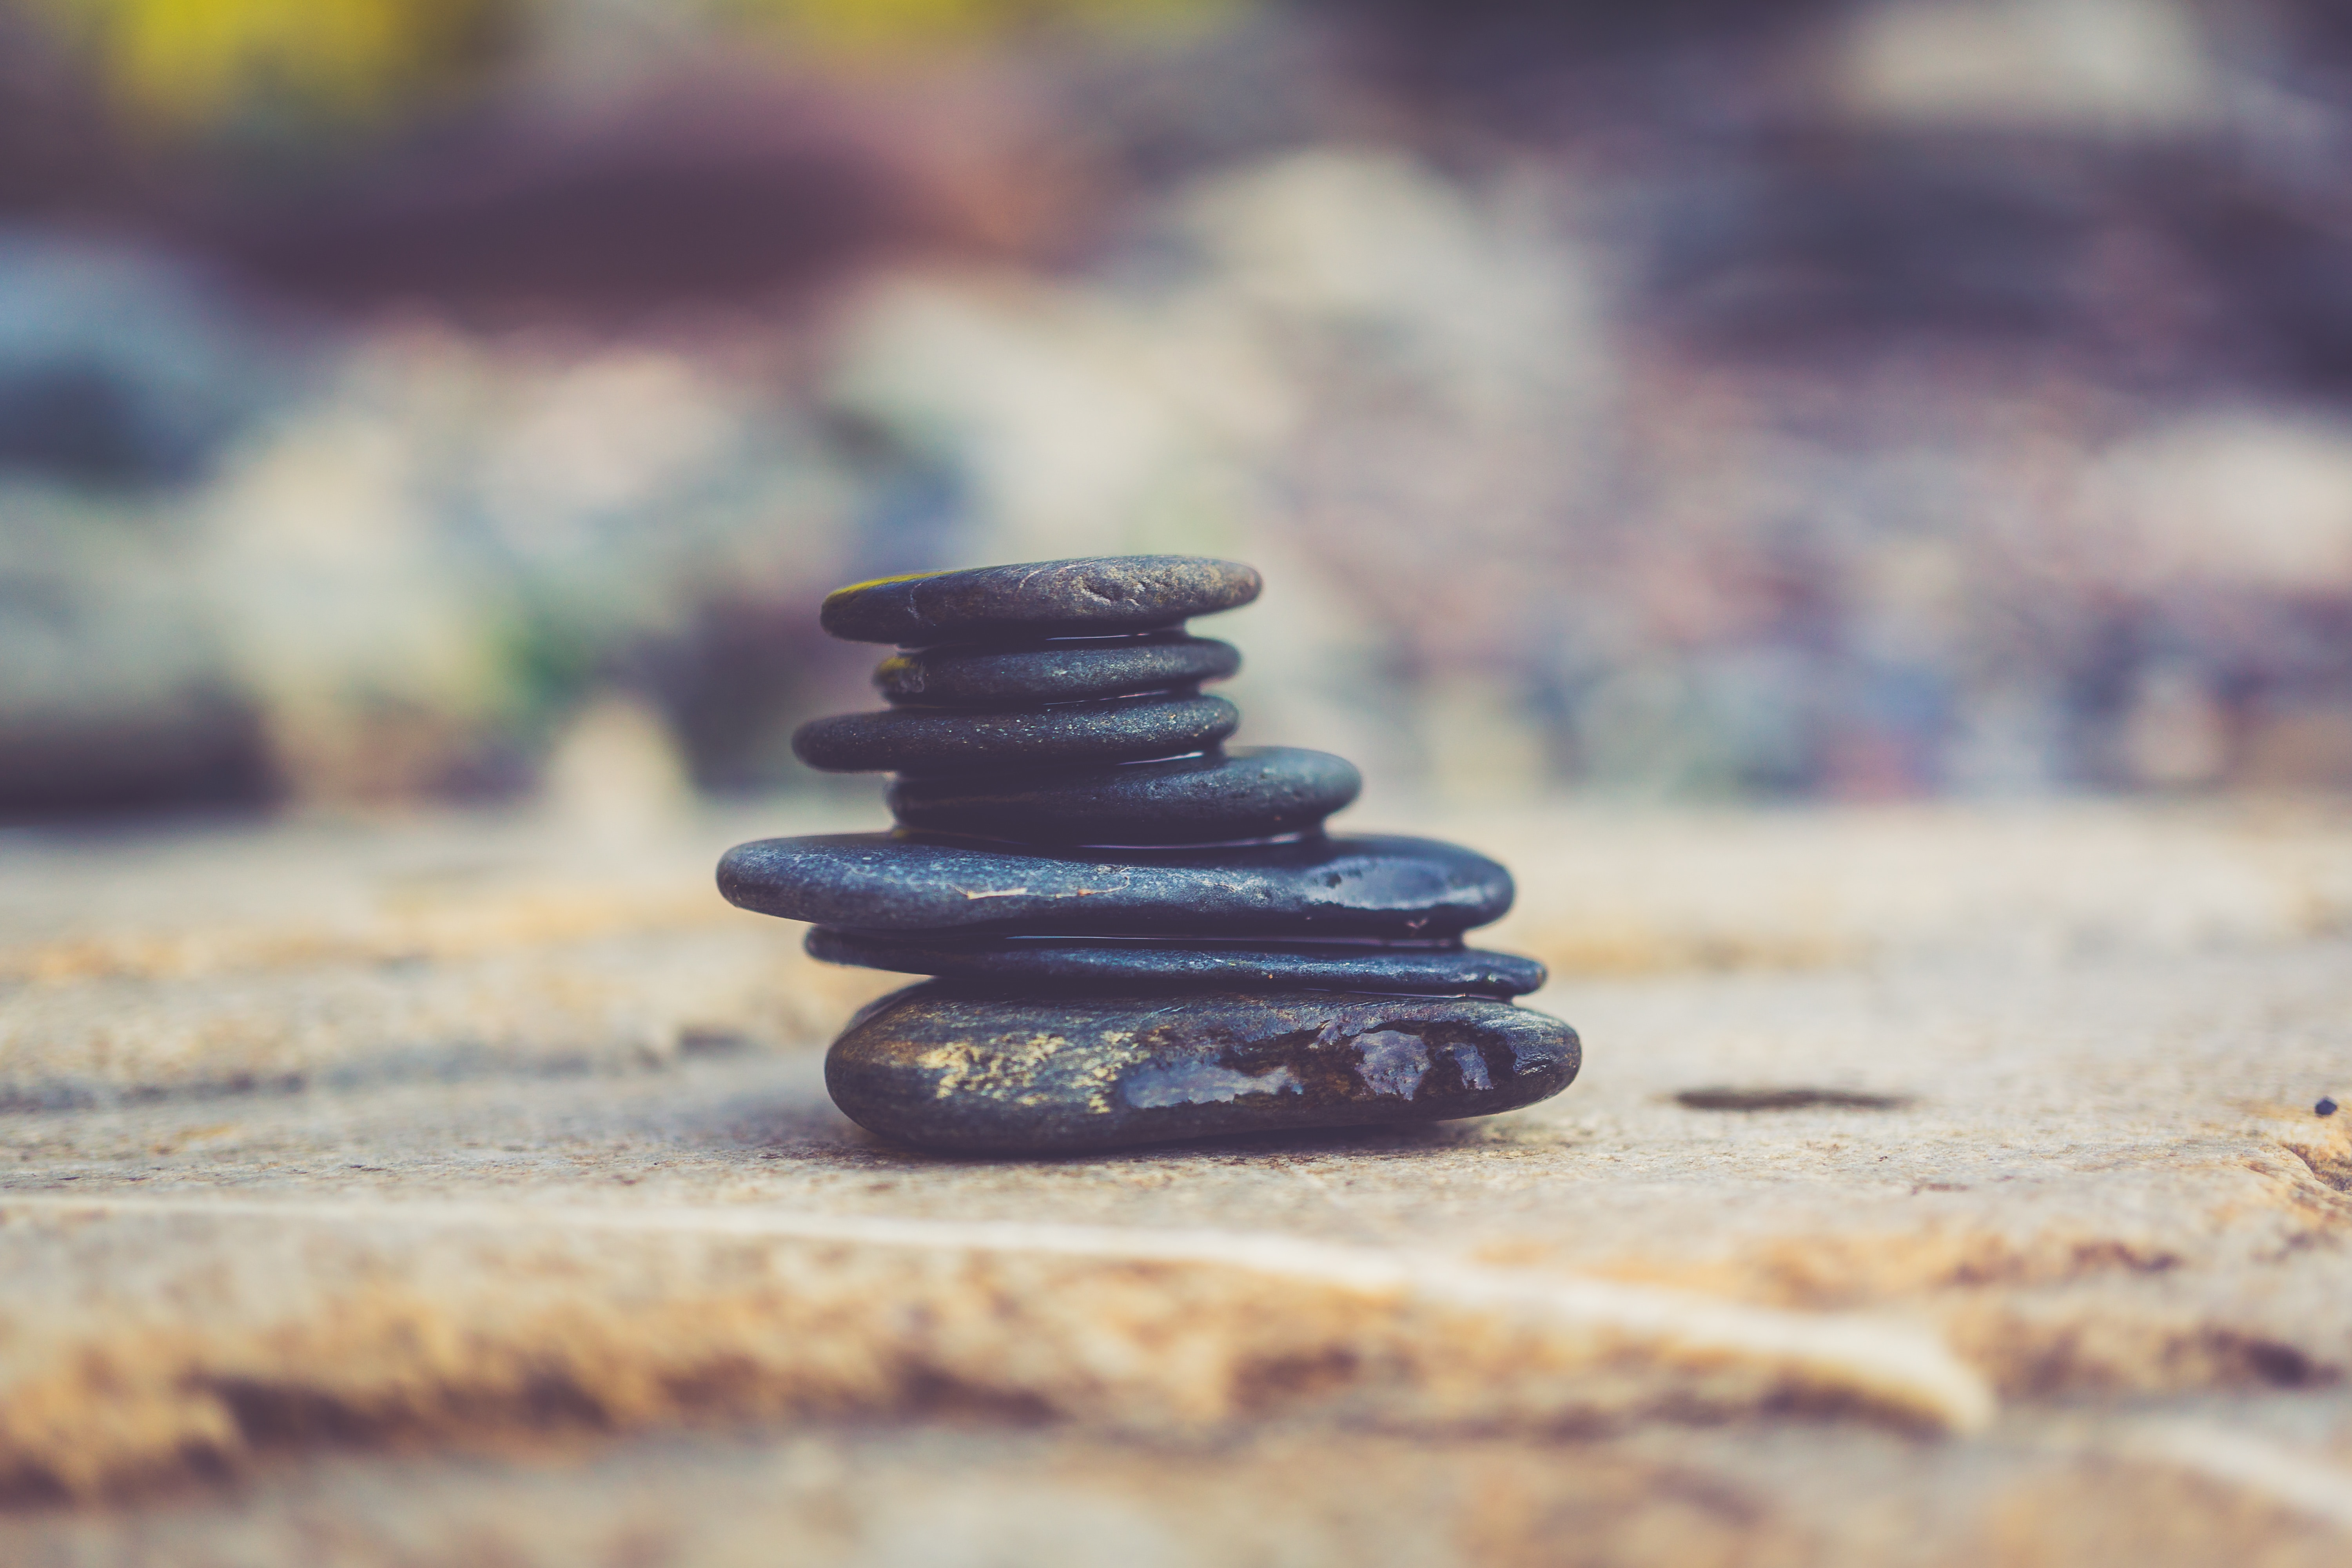 Zen yoga: a photo of a pile of stones